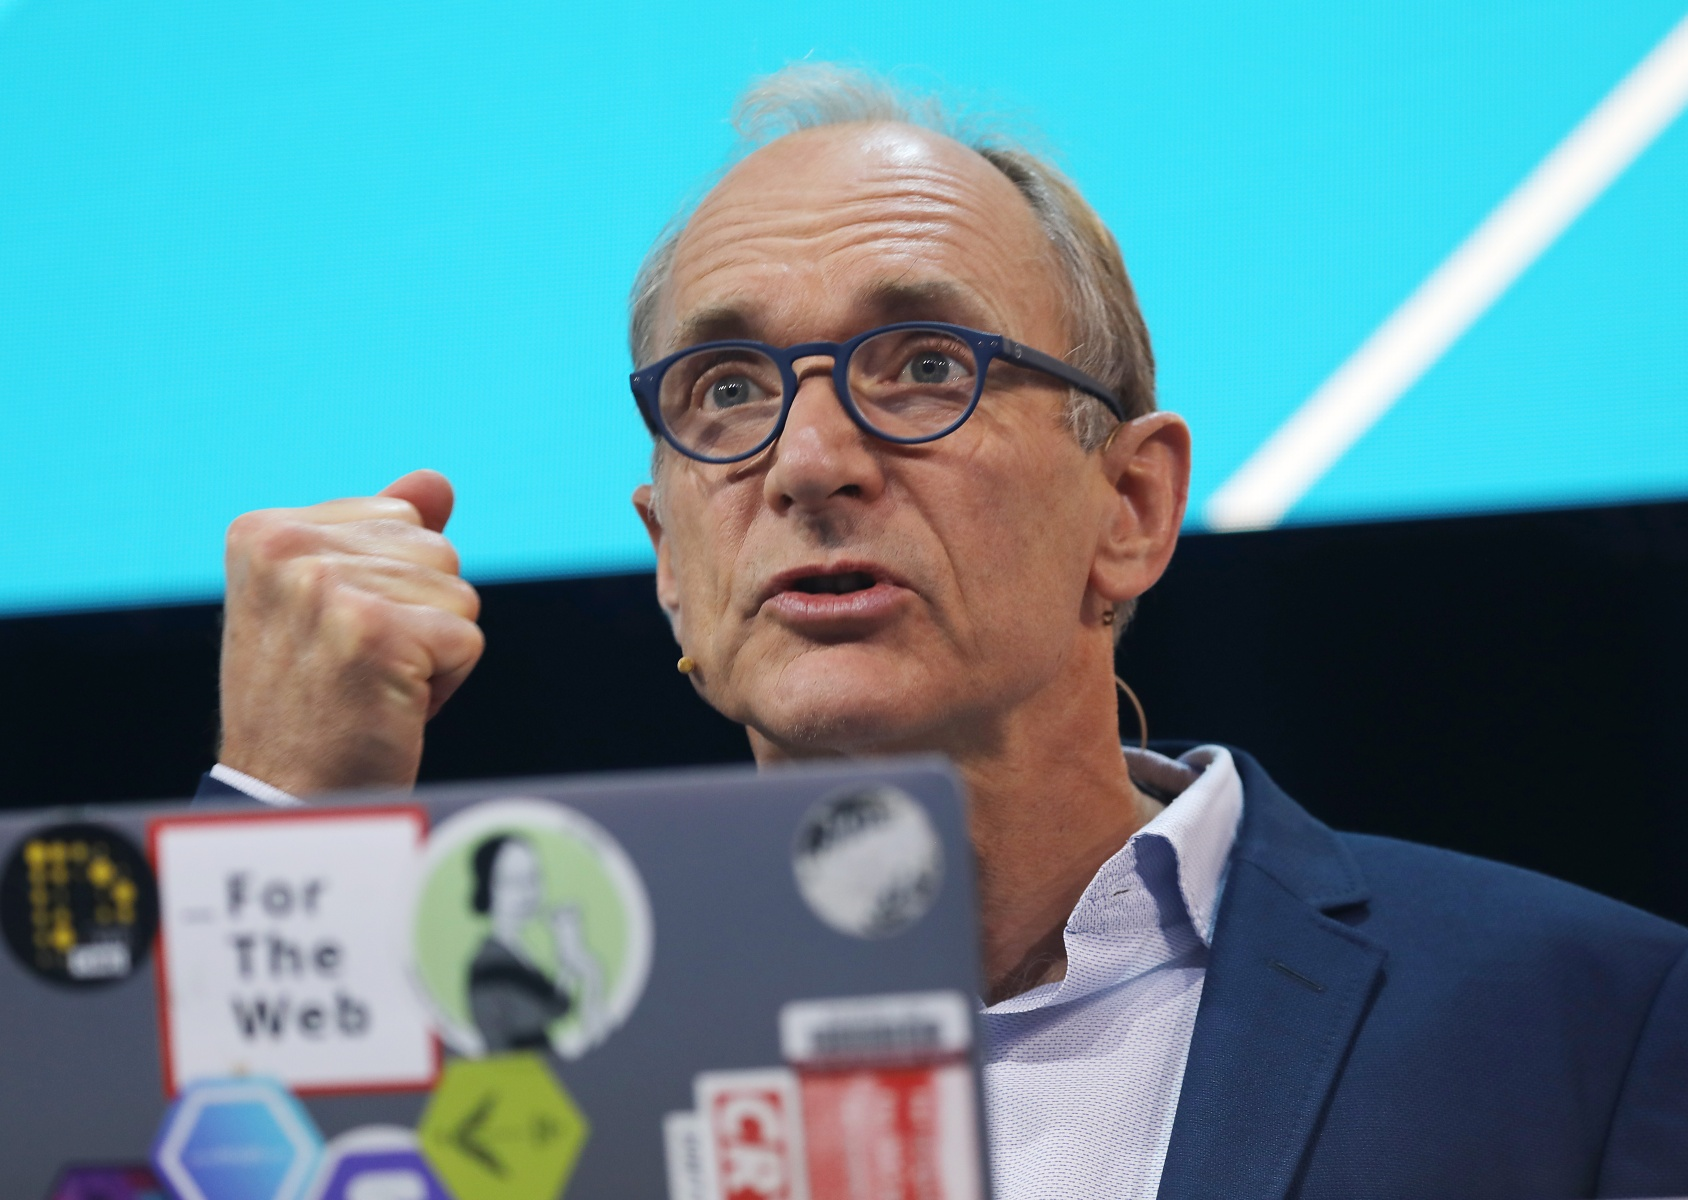 Tim Berners-Lee wants to fix the raging dumpster fire that is the internet.